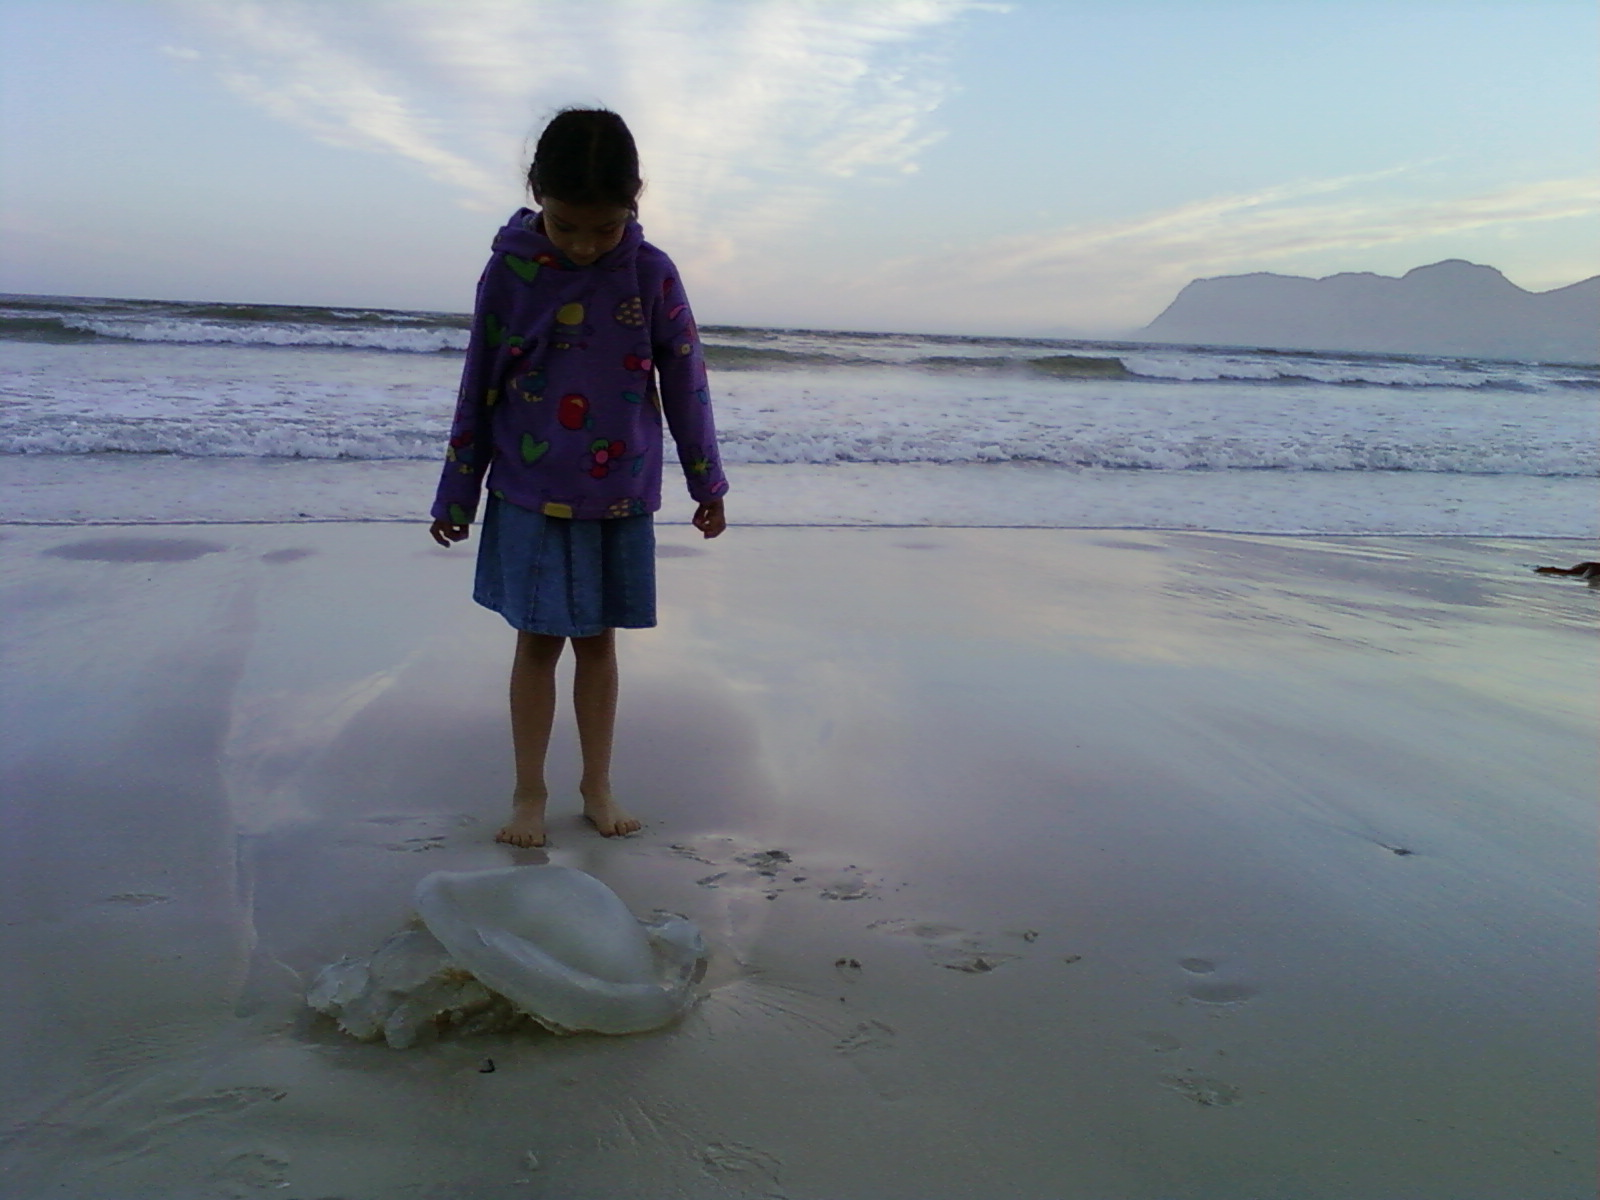 jellyfish on beach